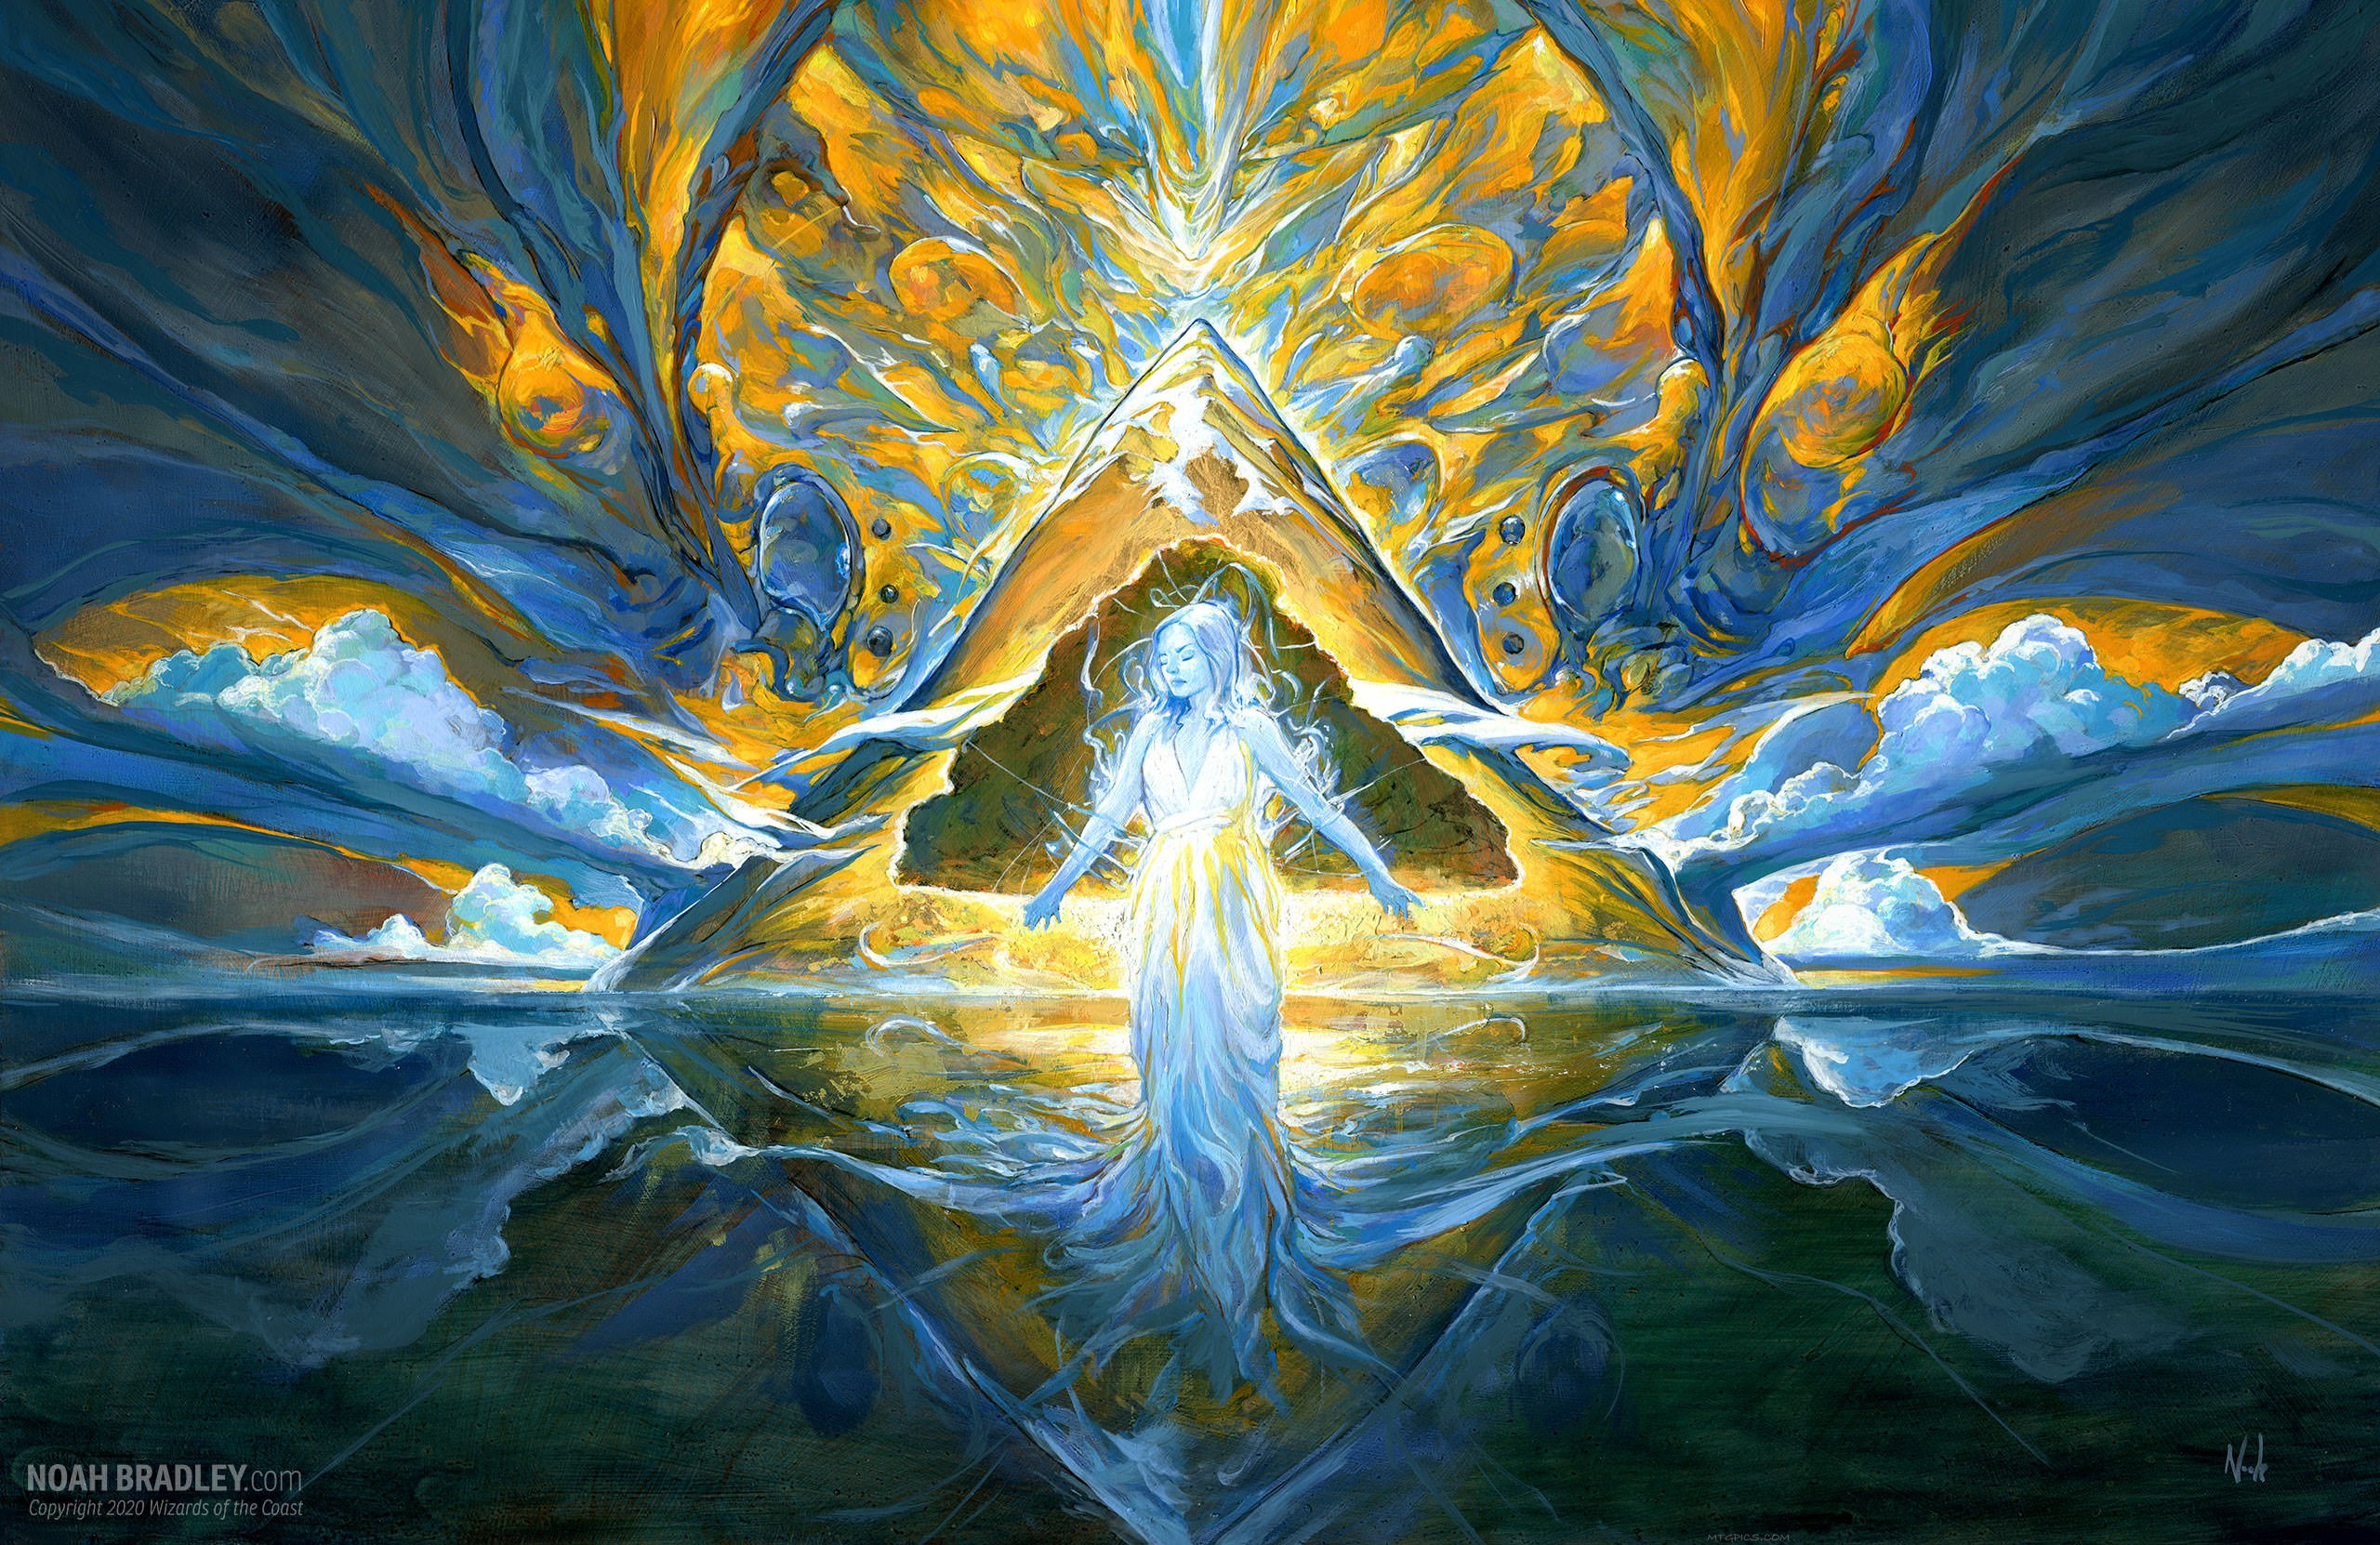 Song of Creation | Illustration by Noah Bradley